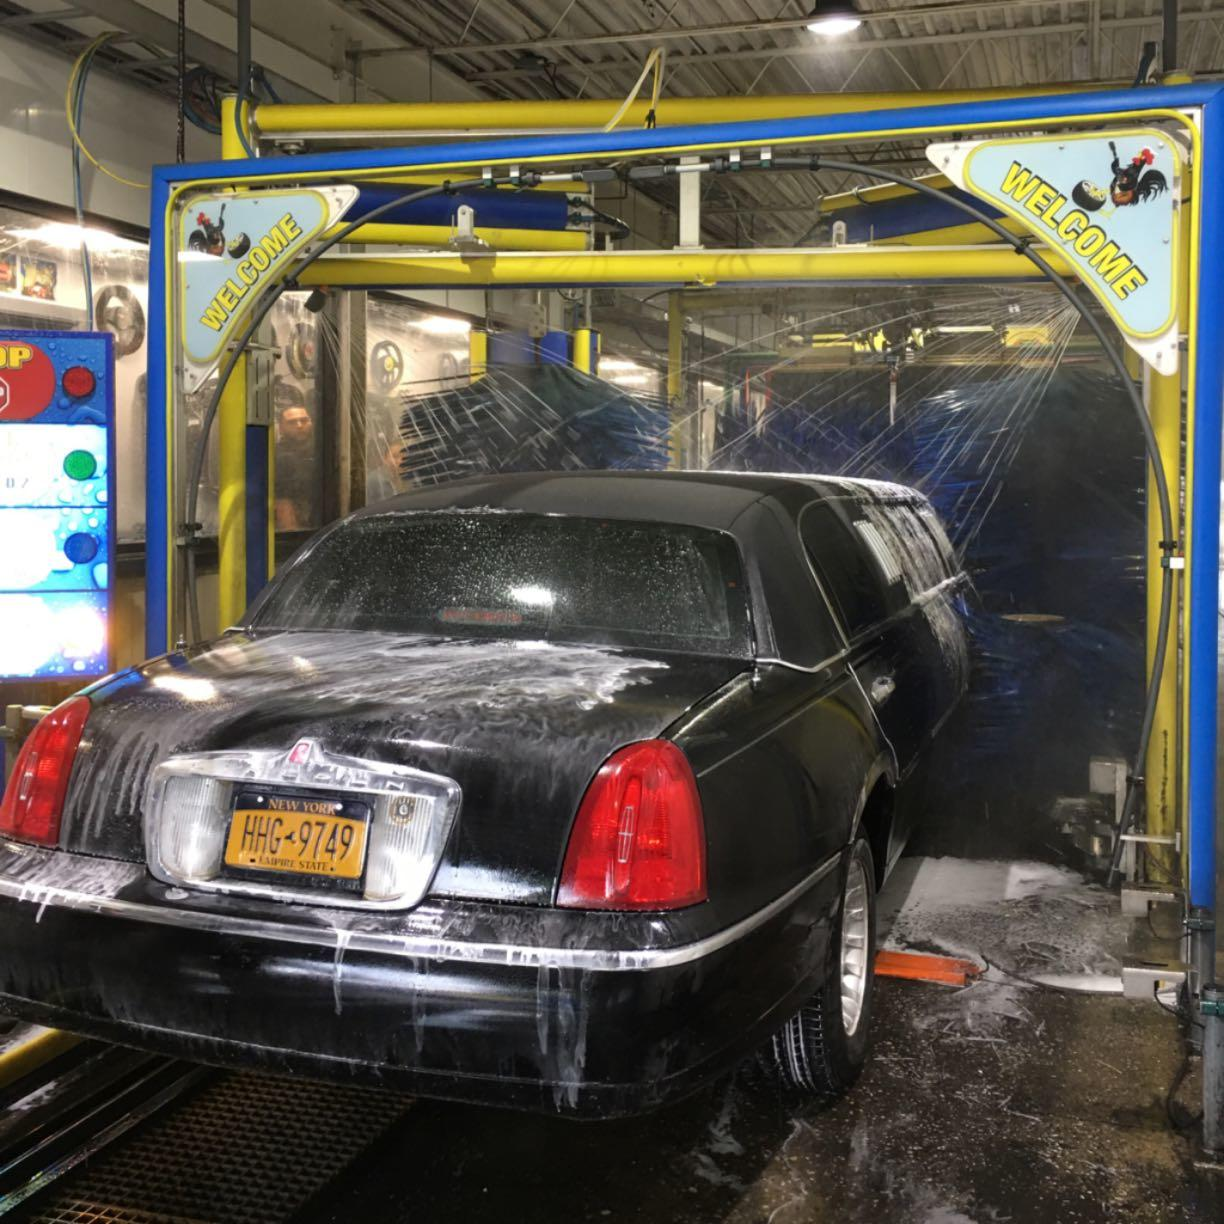 Wash N Roll Car Wash & Auto Repair Coupons Near Me In